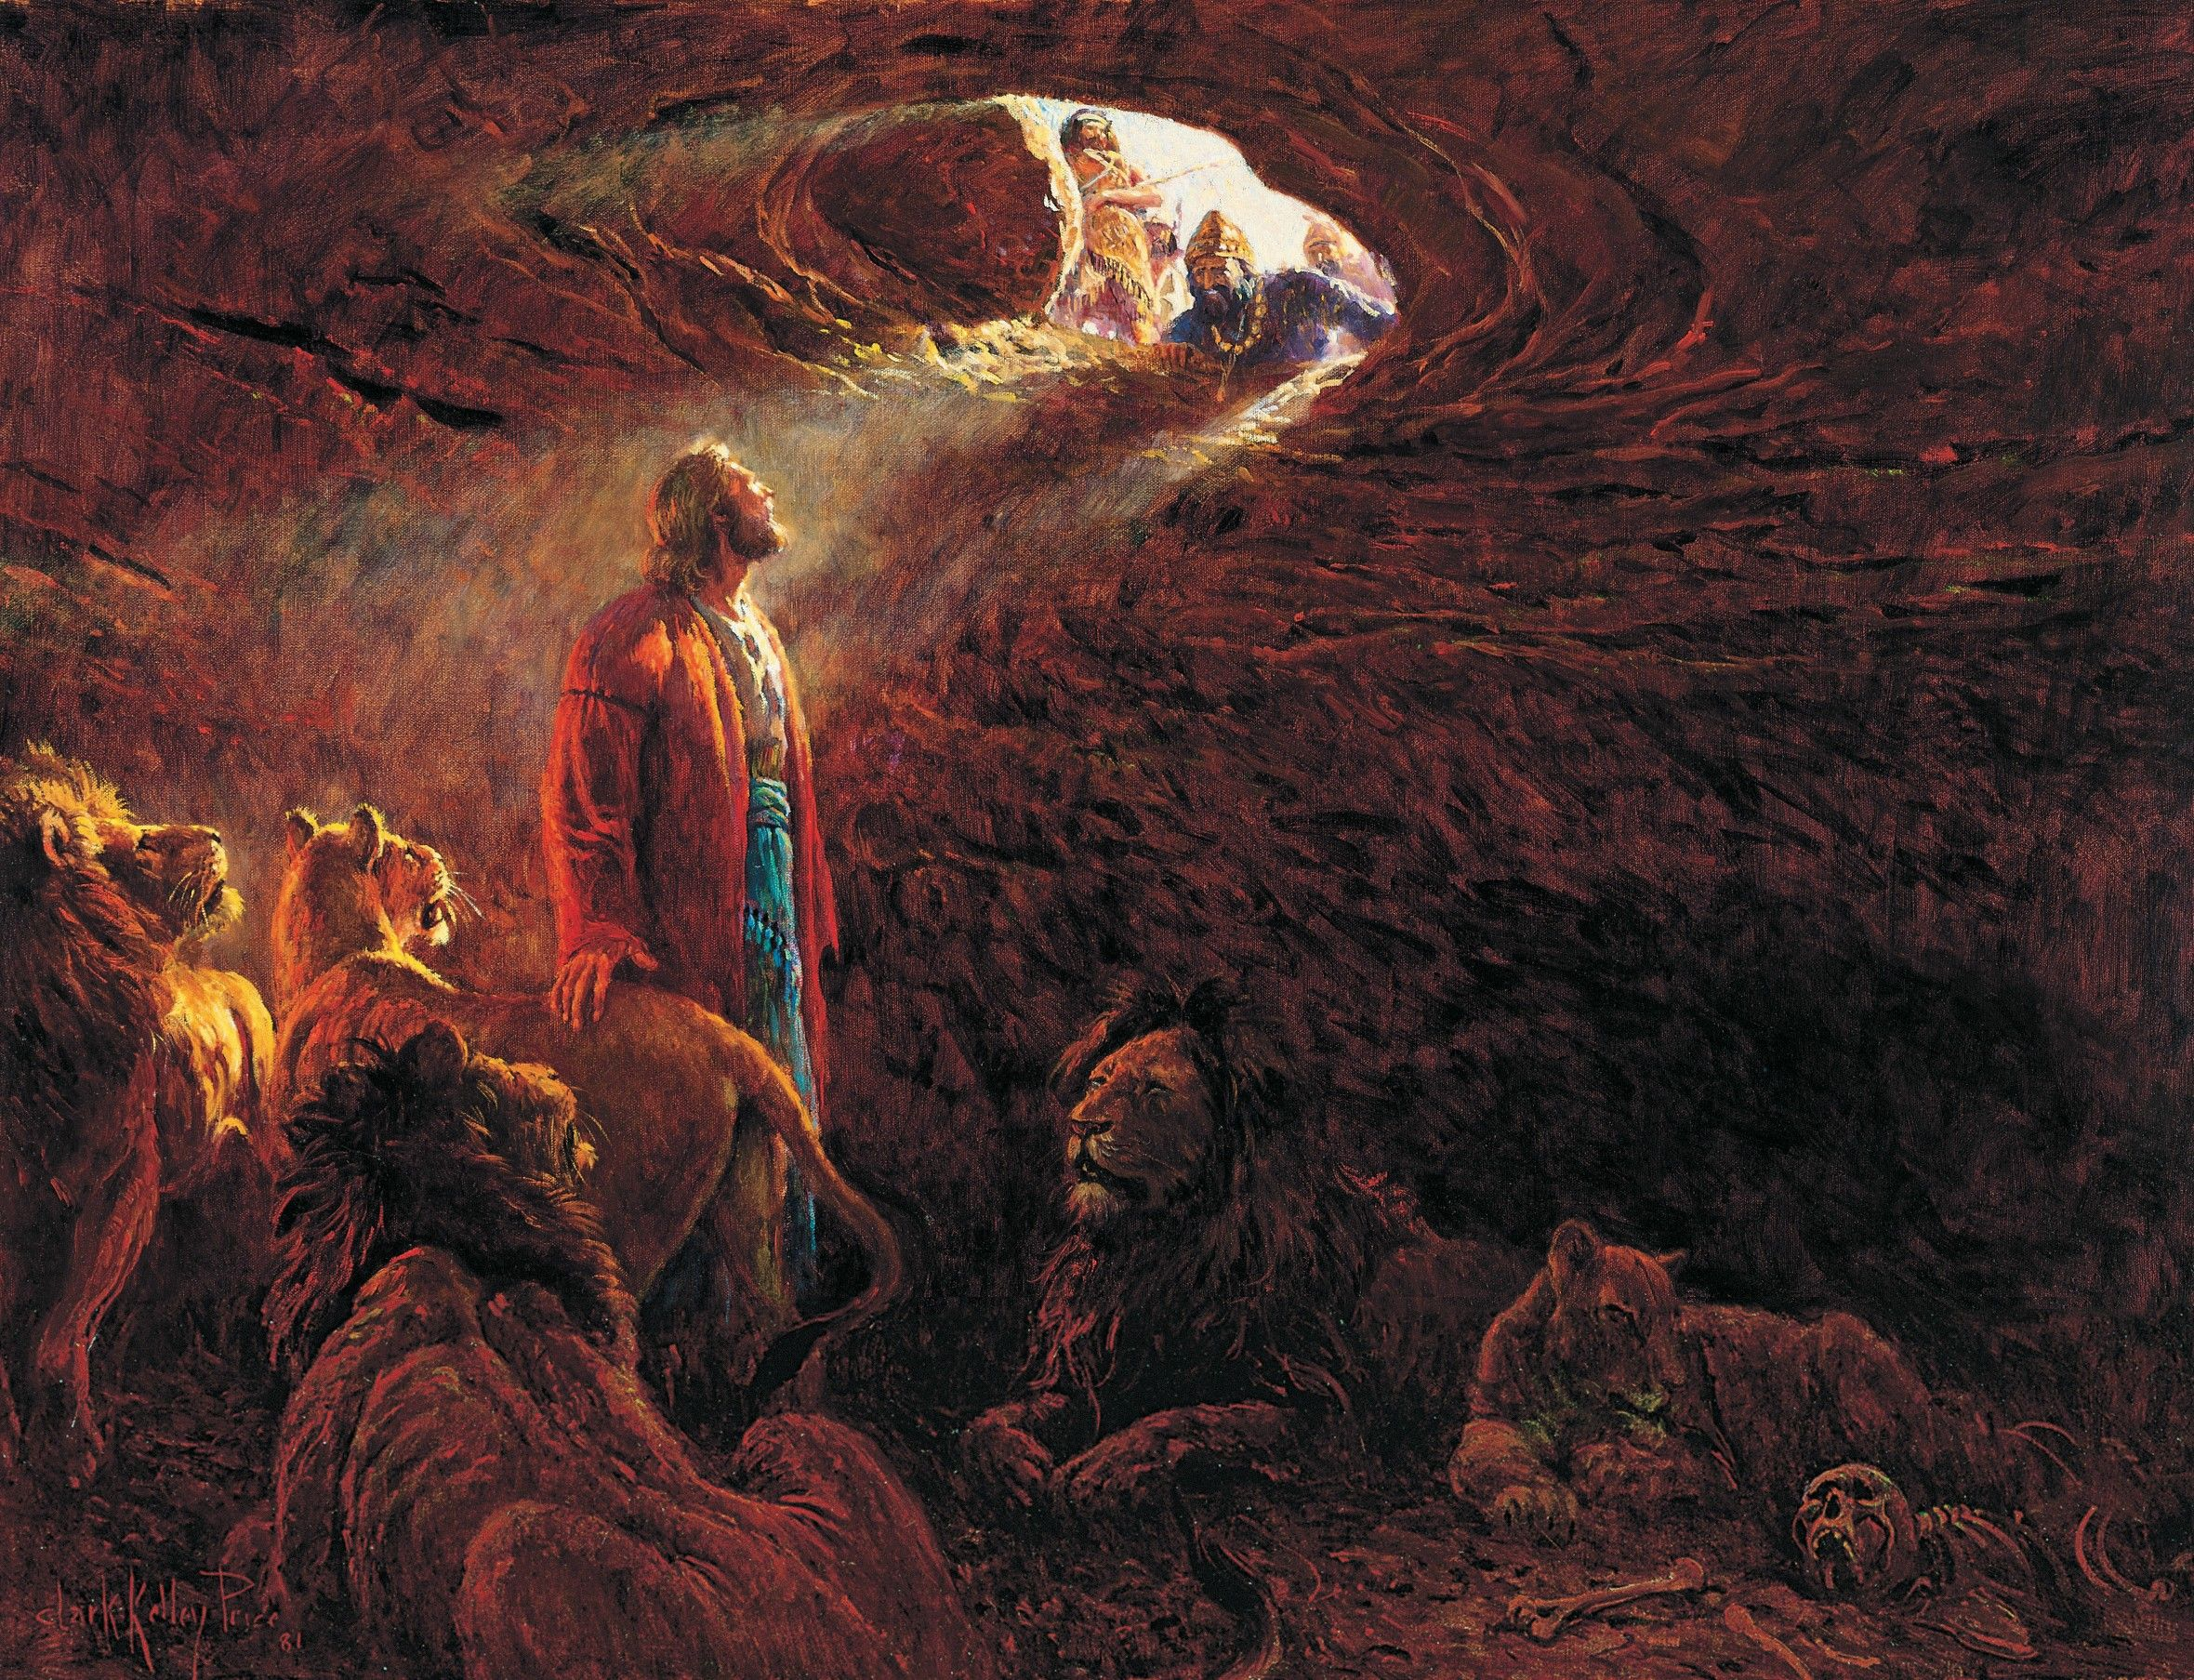 Daniel in the Lions' Den, by Clark Kelley Price (62096); GAK 117; GAB 26; Primary manual 1-14; Primary manual 6-13; Daniel 6